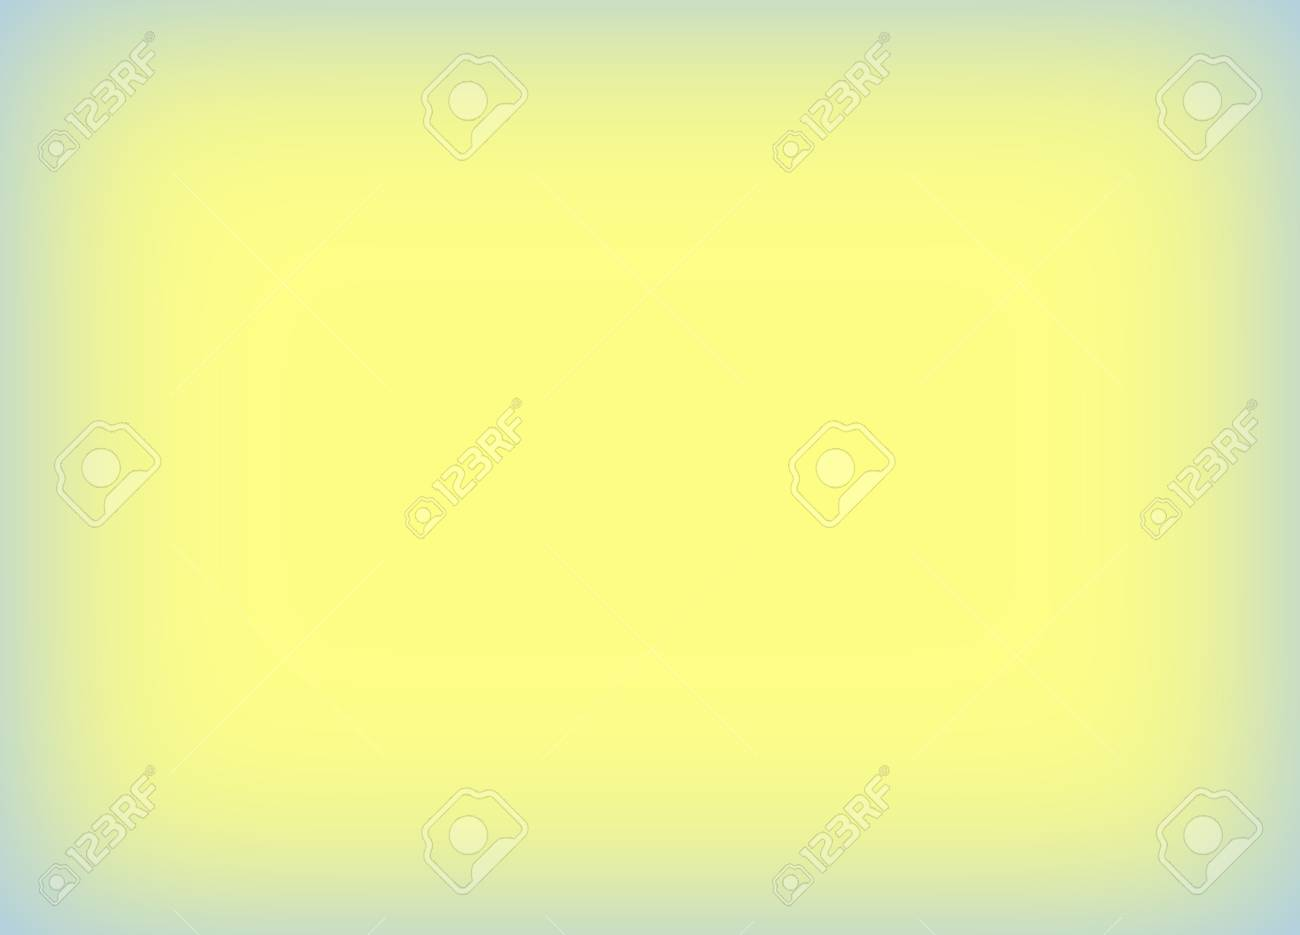 Yellow and green color background texture for business card design stock photo yellow and green color background texture for business card design background with space for text colourmoves